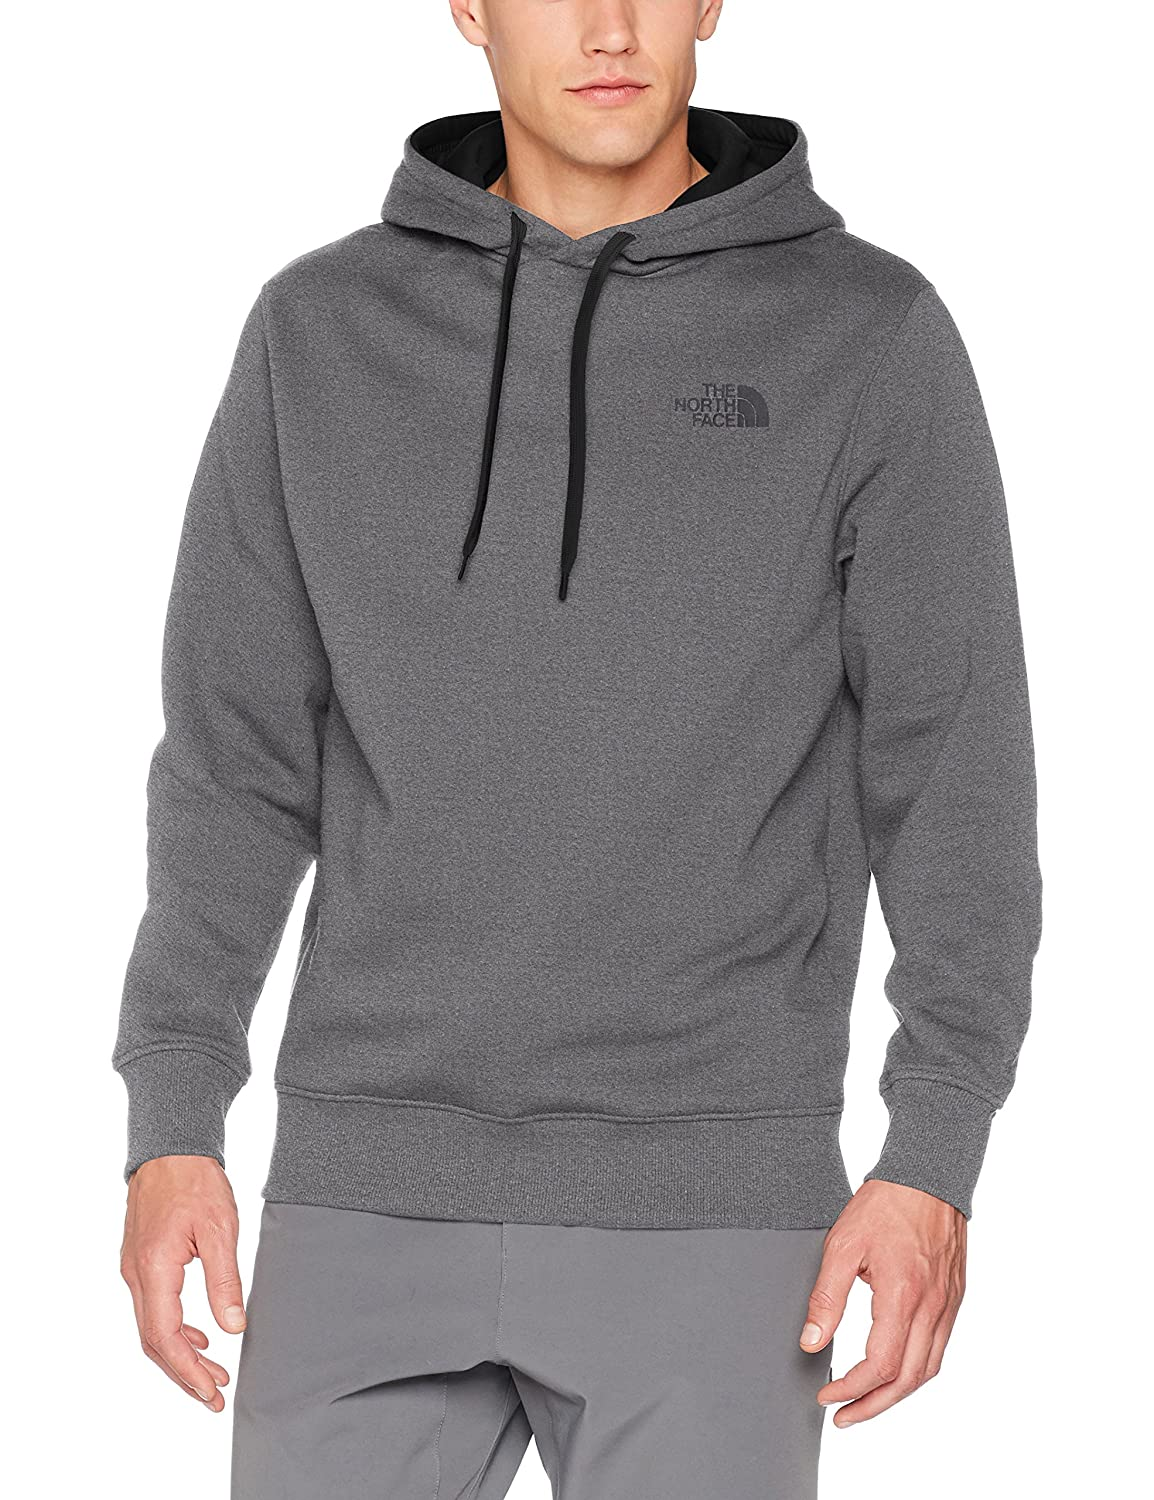 THE NORTH FACE North Face Face Face M Seasonal Drew Peak Pullover Hoodie Sweatshirt, Herren ab1885